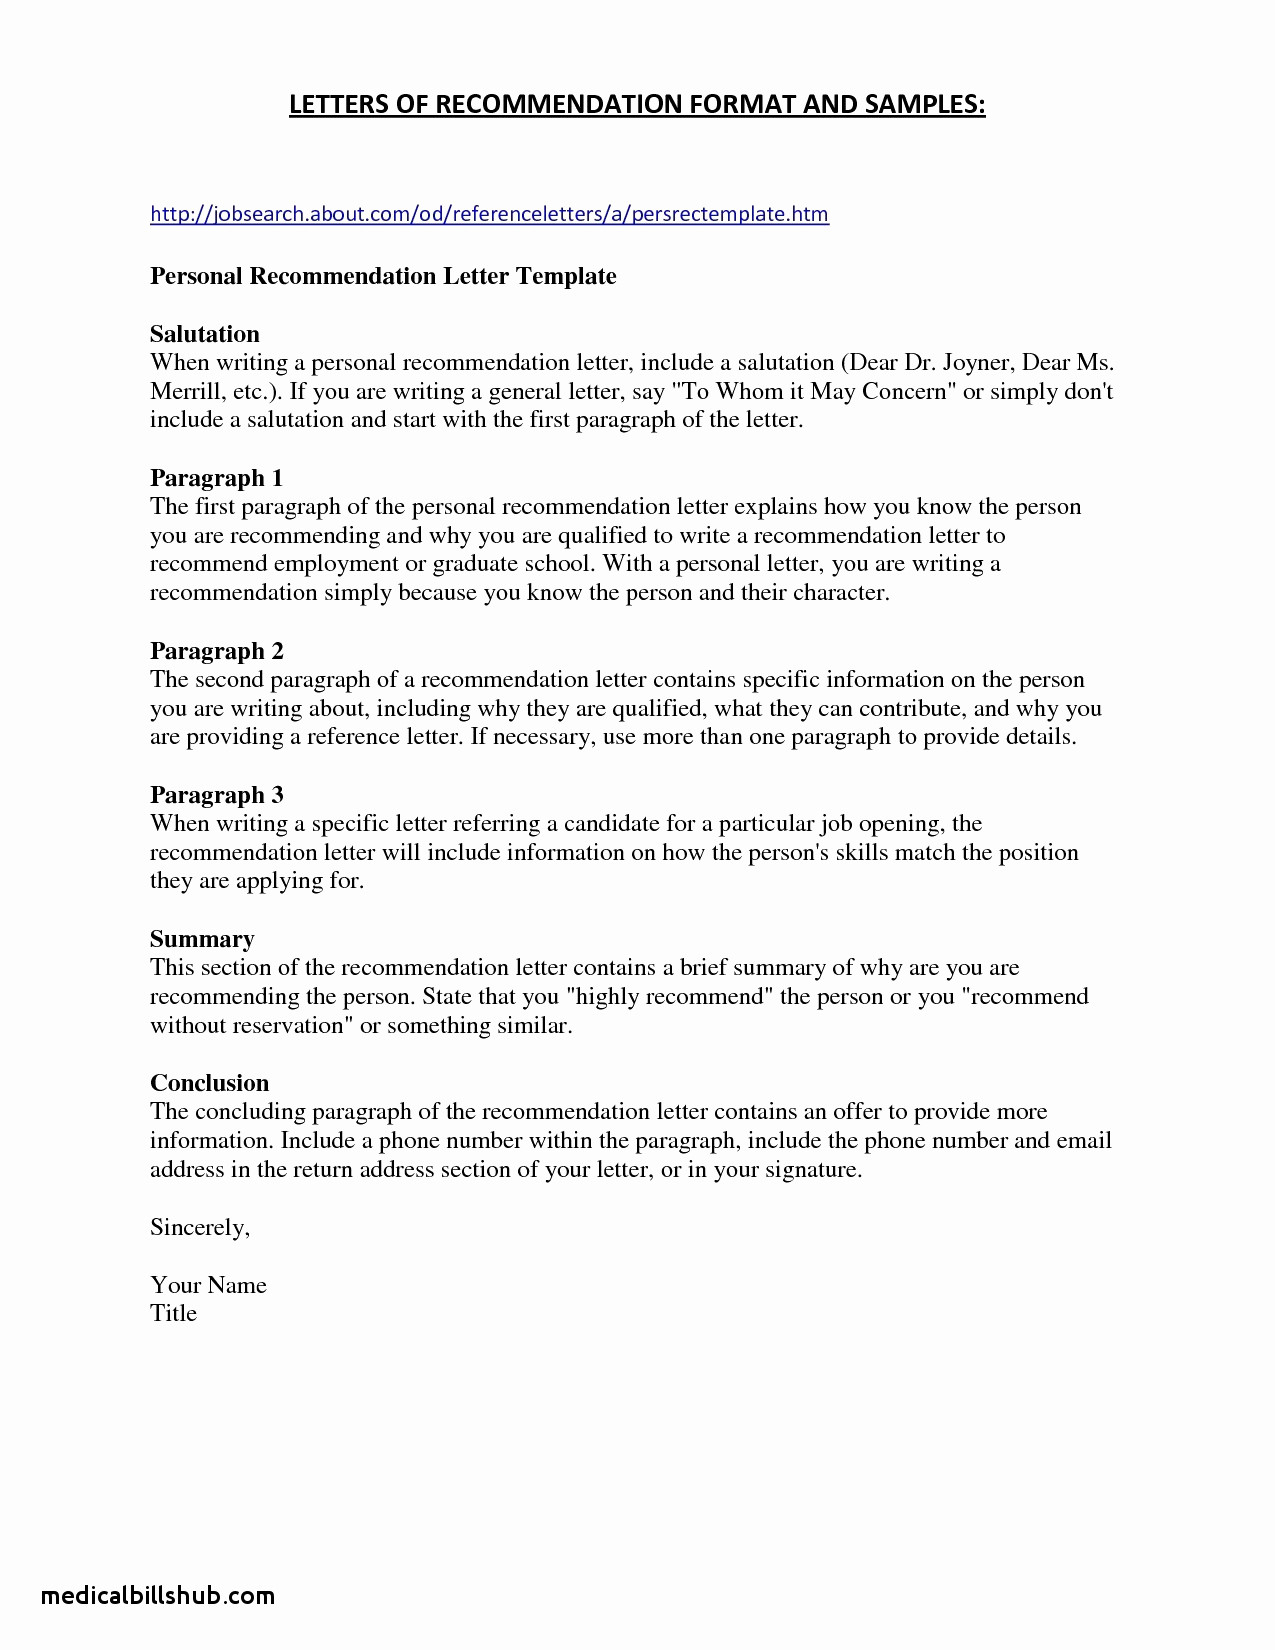 Medical assistant No Experience - Medical assistant Cover Letter Template New Medical assistant Cover